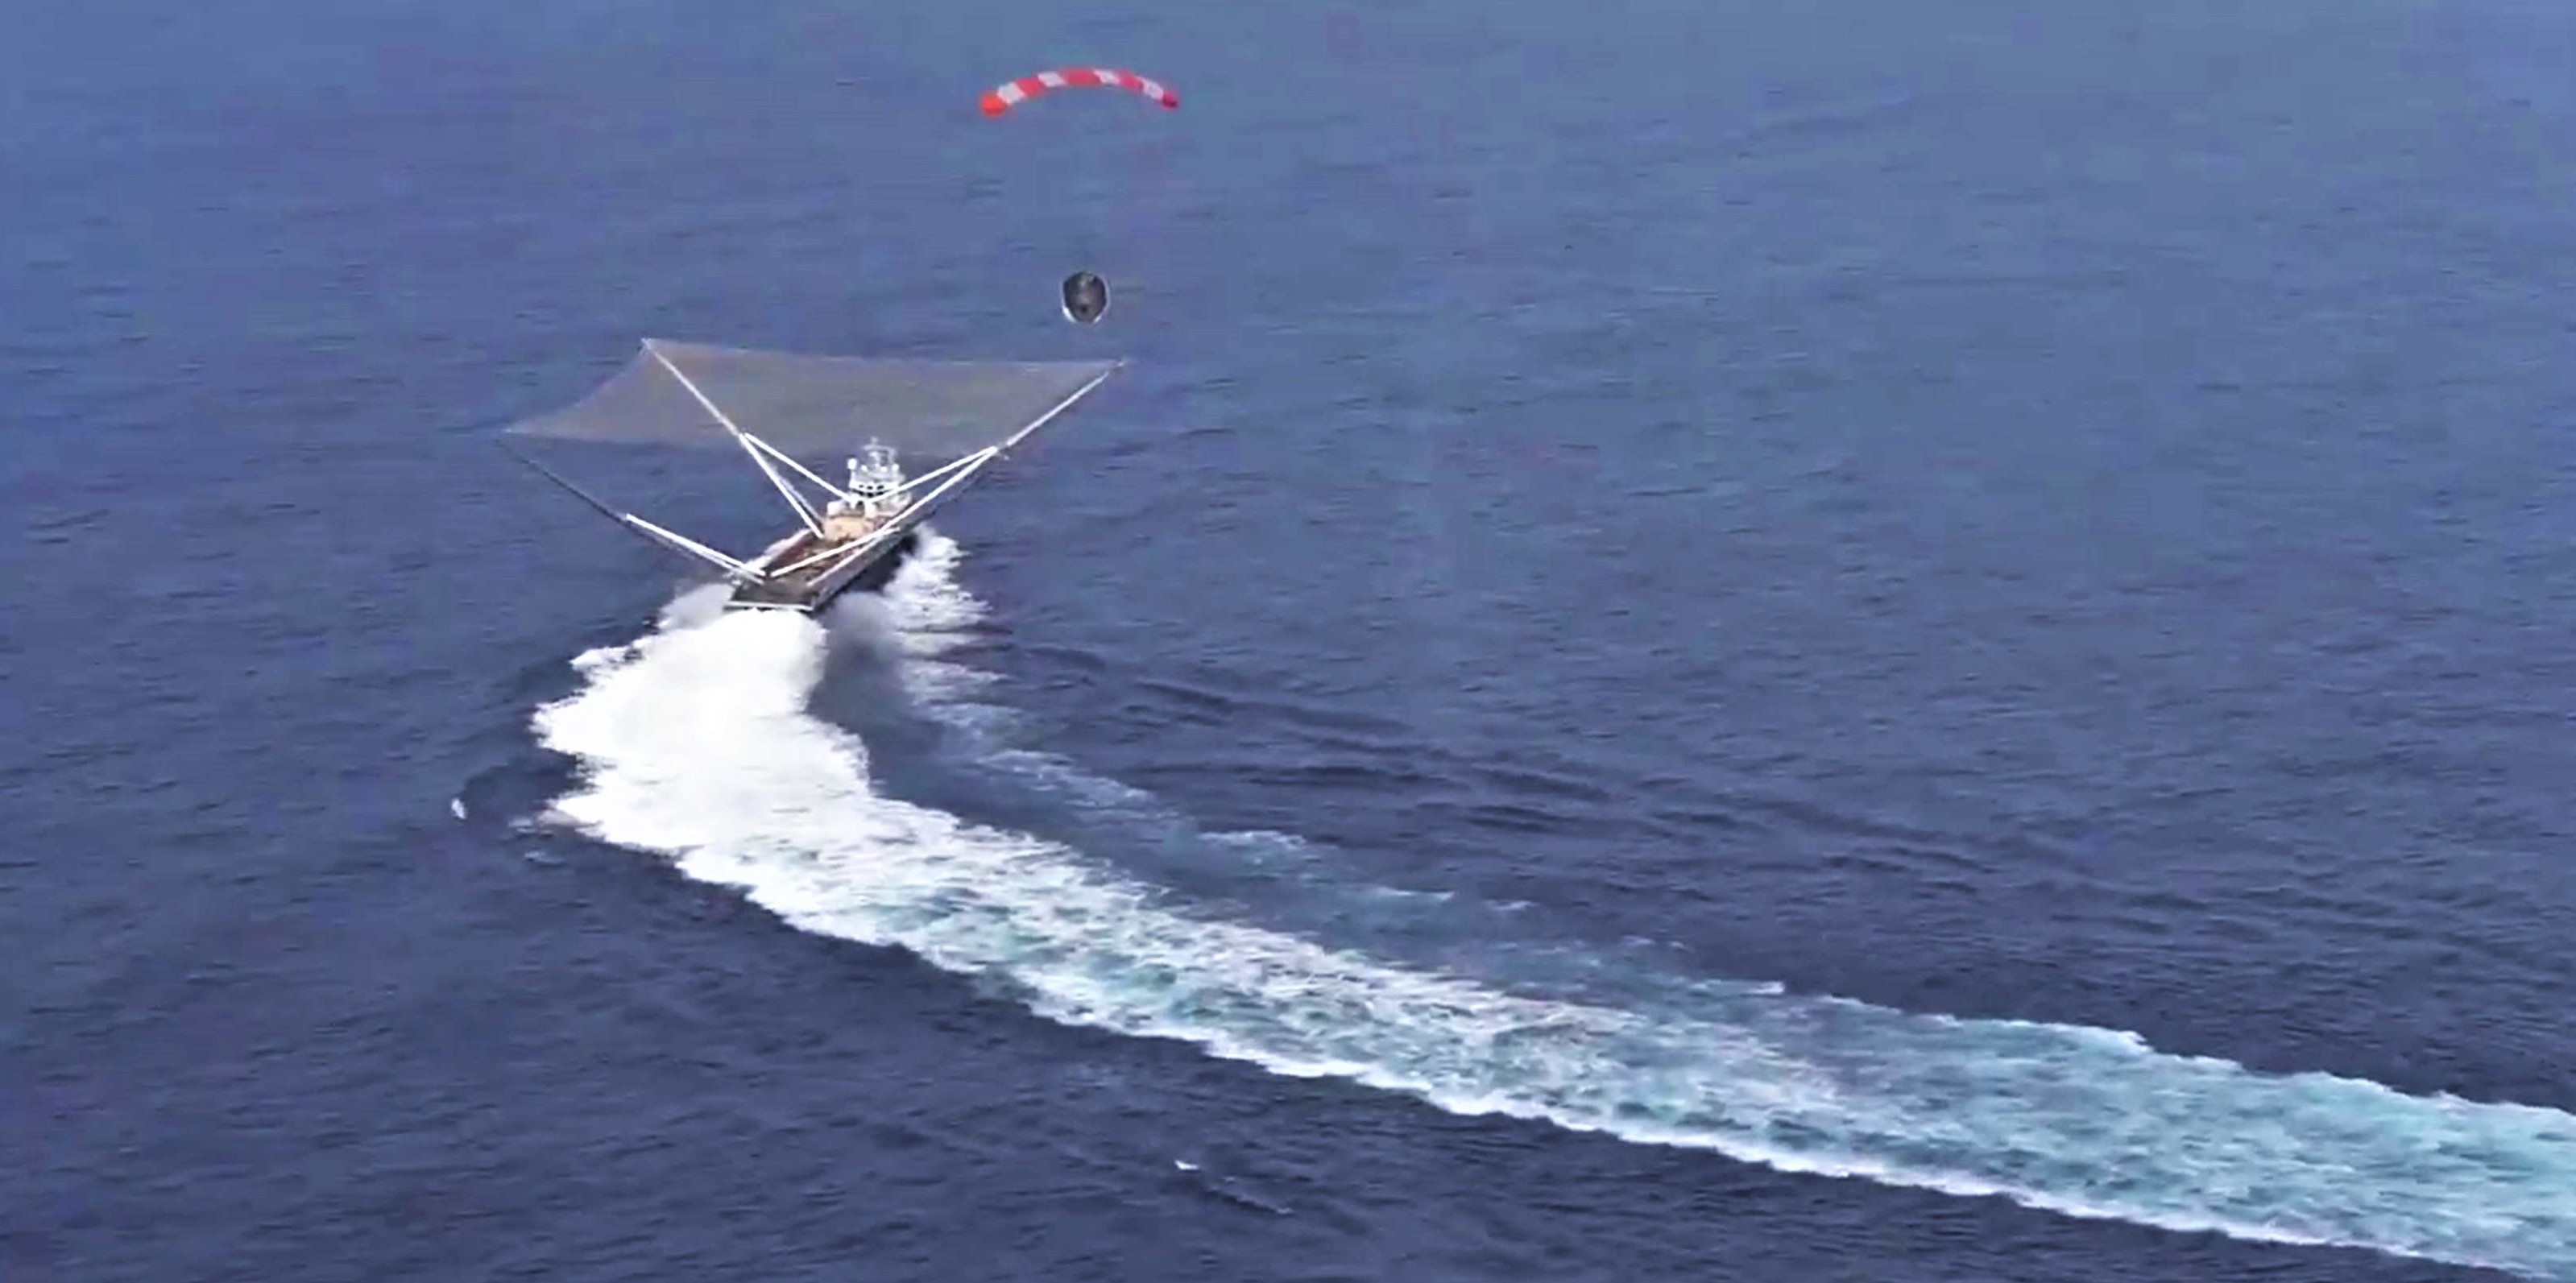 Mr Steven fairing recovery near miss December 2018 (SpaceX) 1